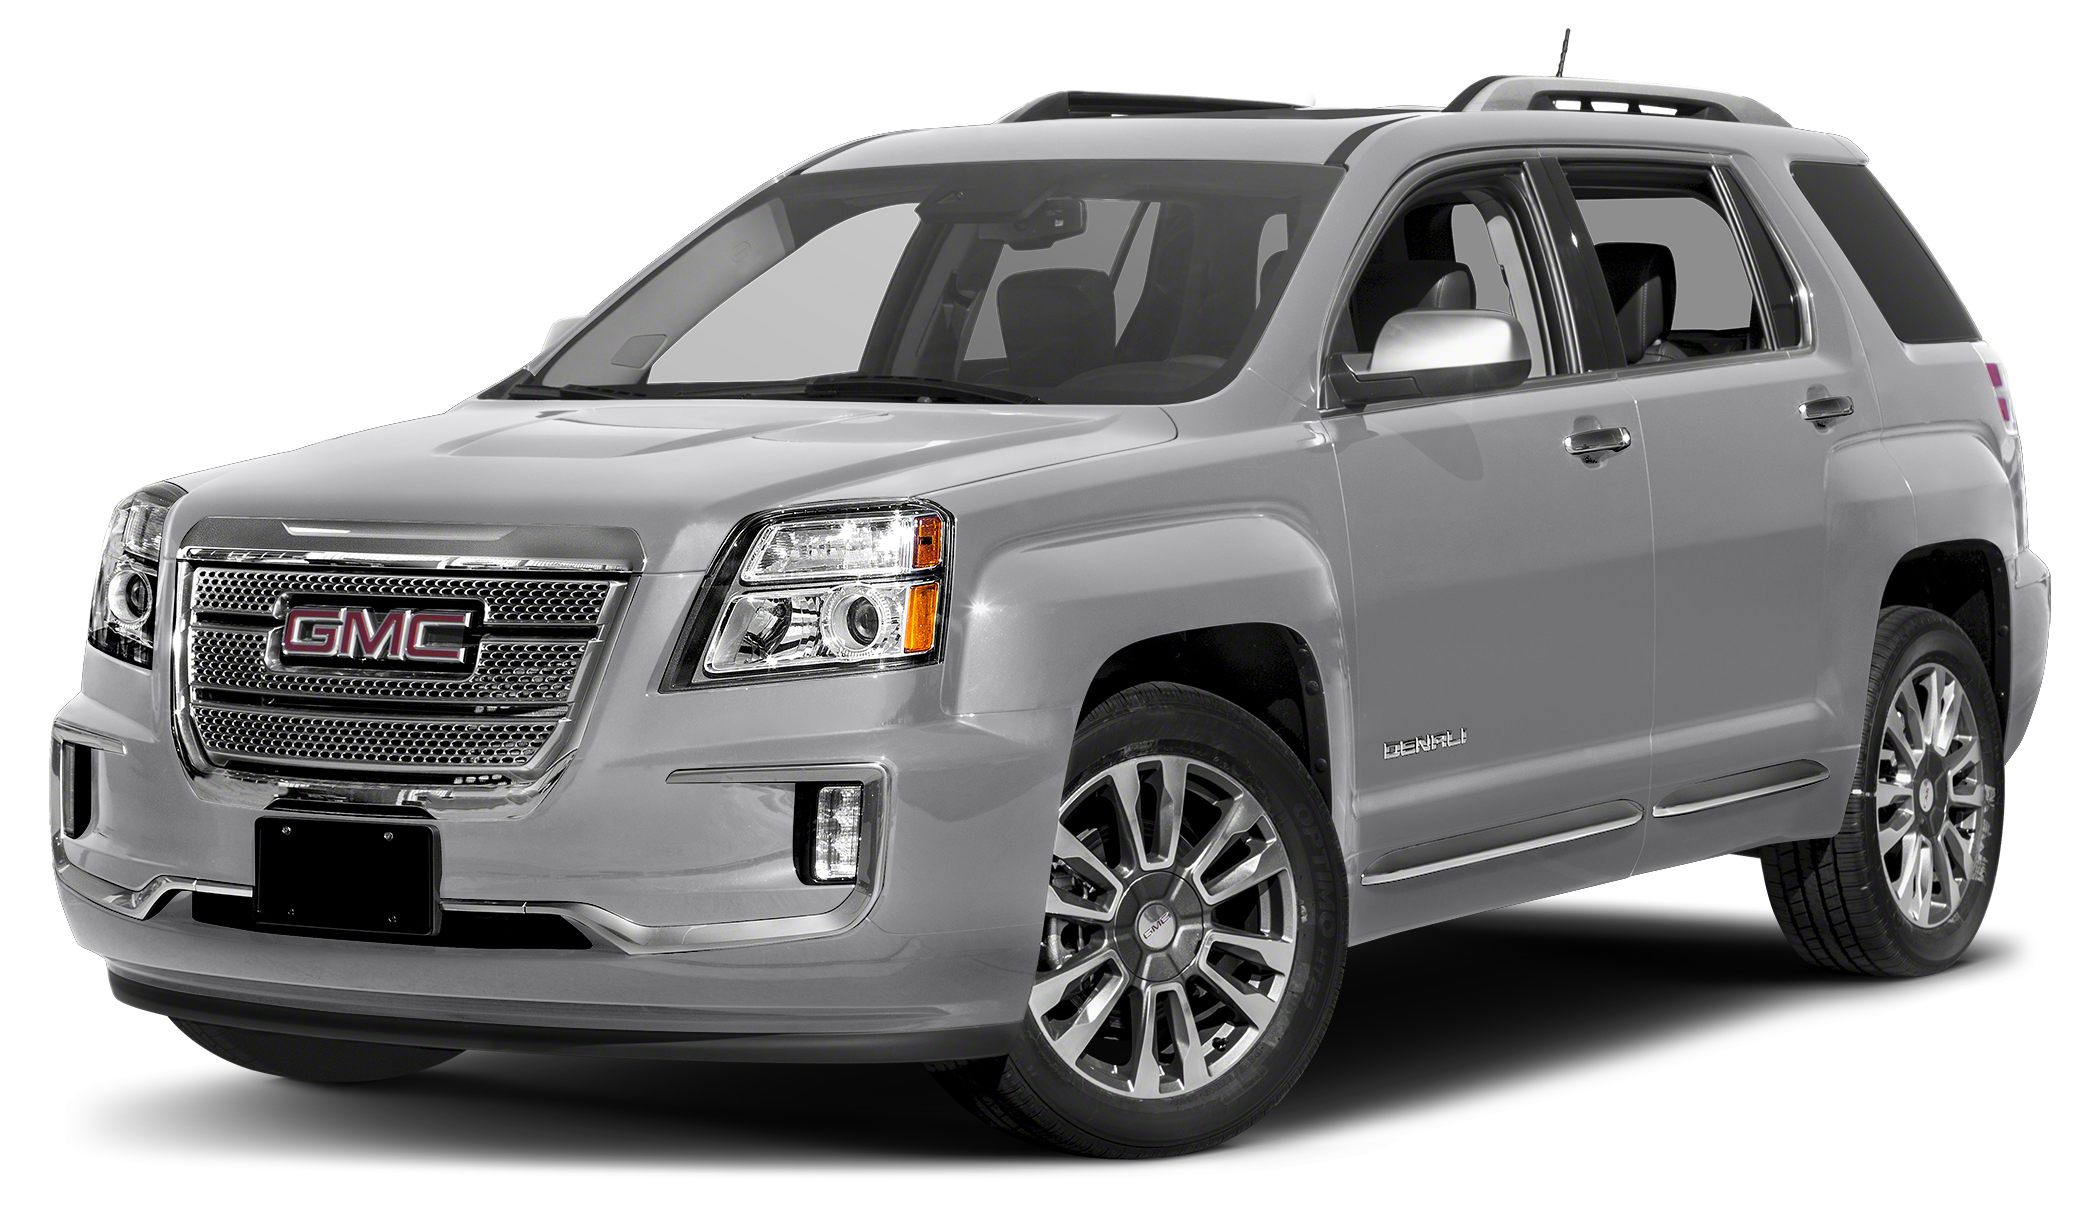 2014 gmc terrain prices and expert review the car connection autos post. Black Bedroom Furniture Sets. Home Design Ideas